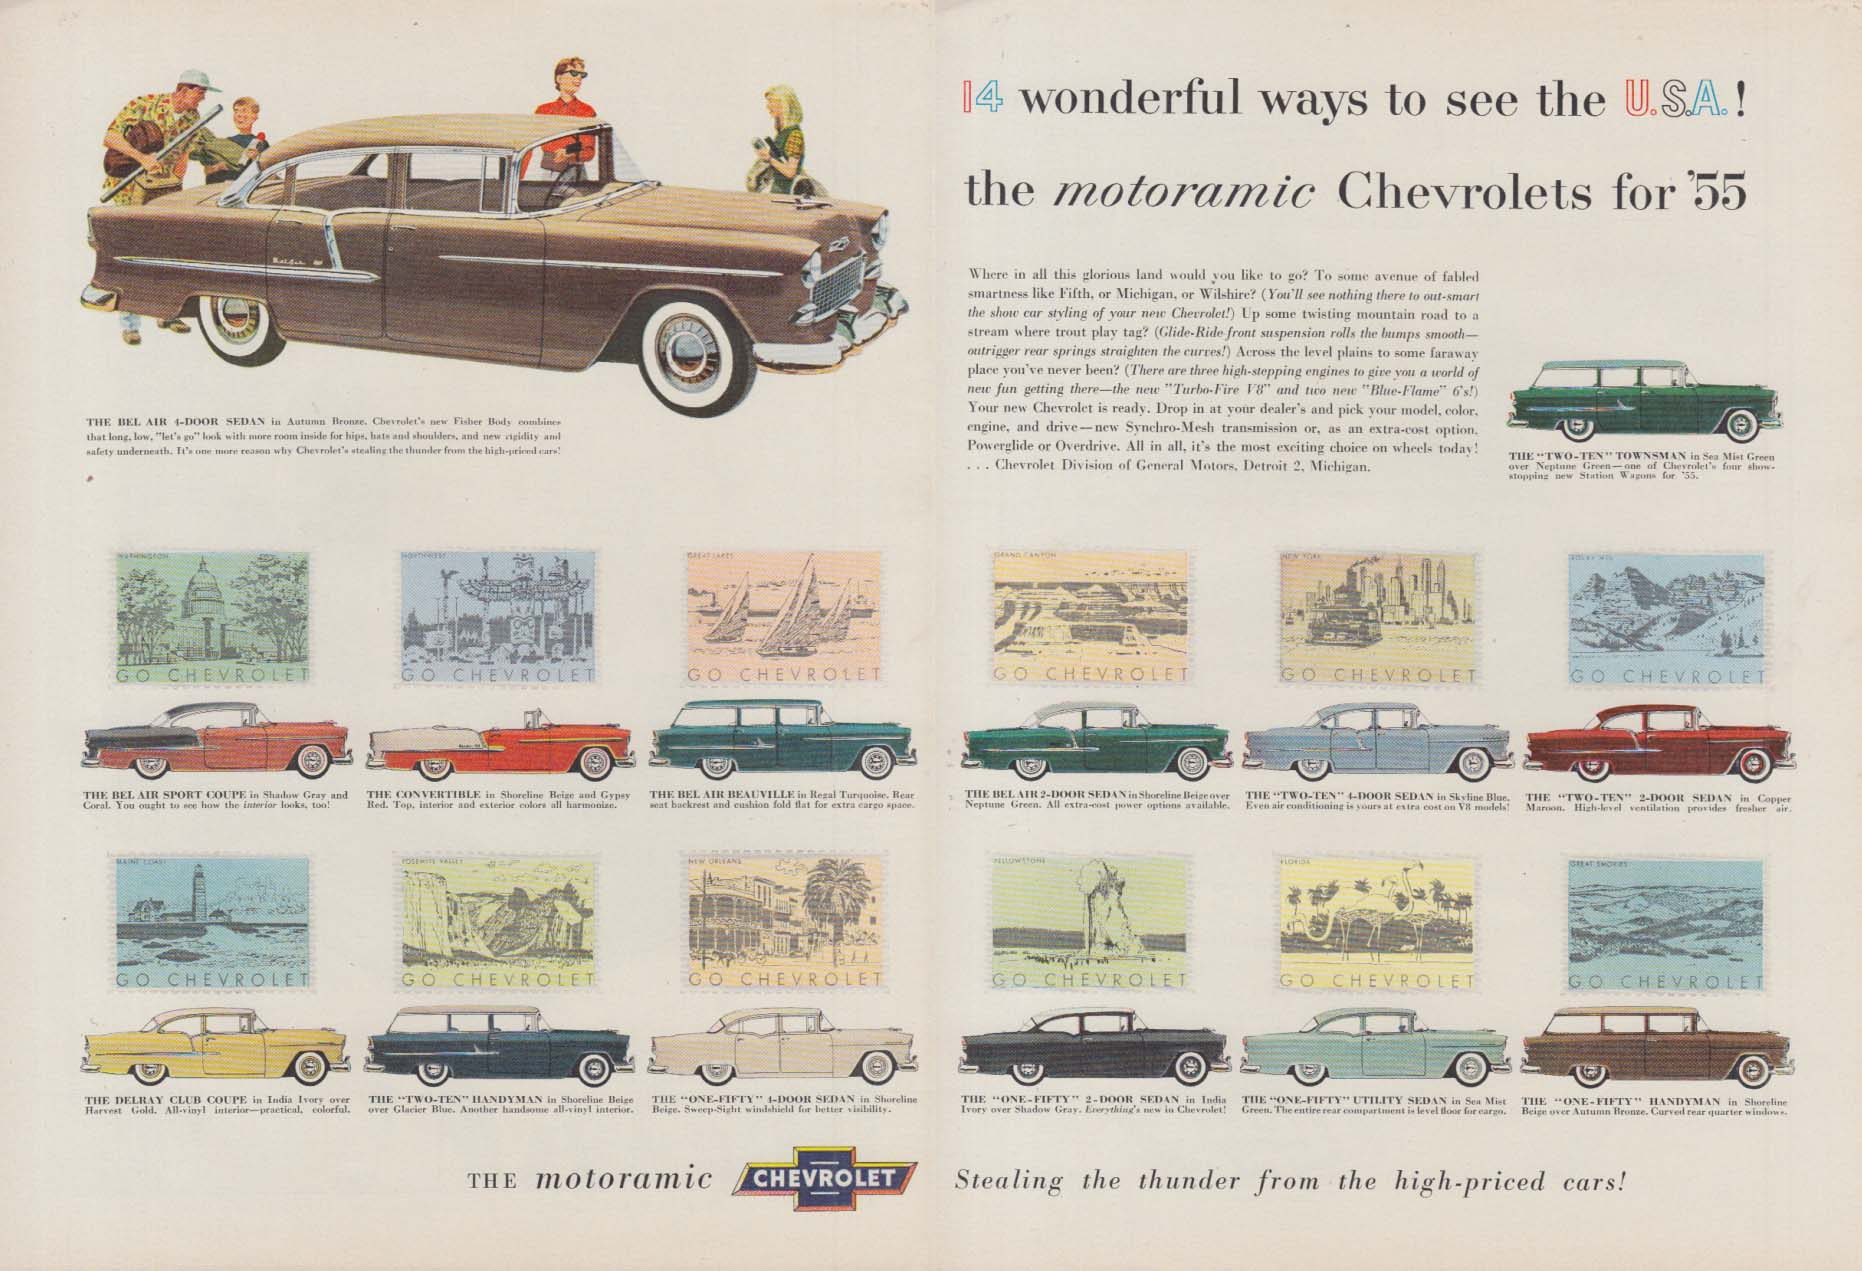 14 Wonderful ways to see the U S A - Chevrolet ad 1955 T